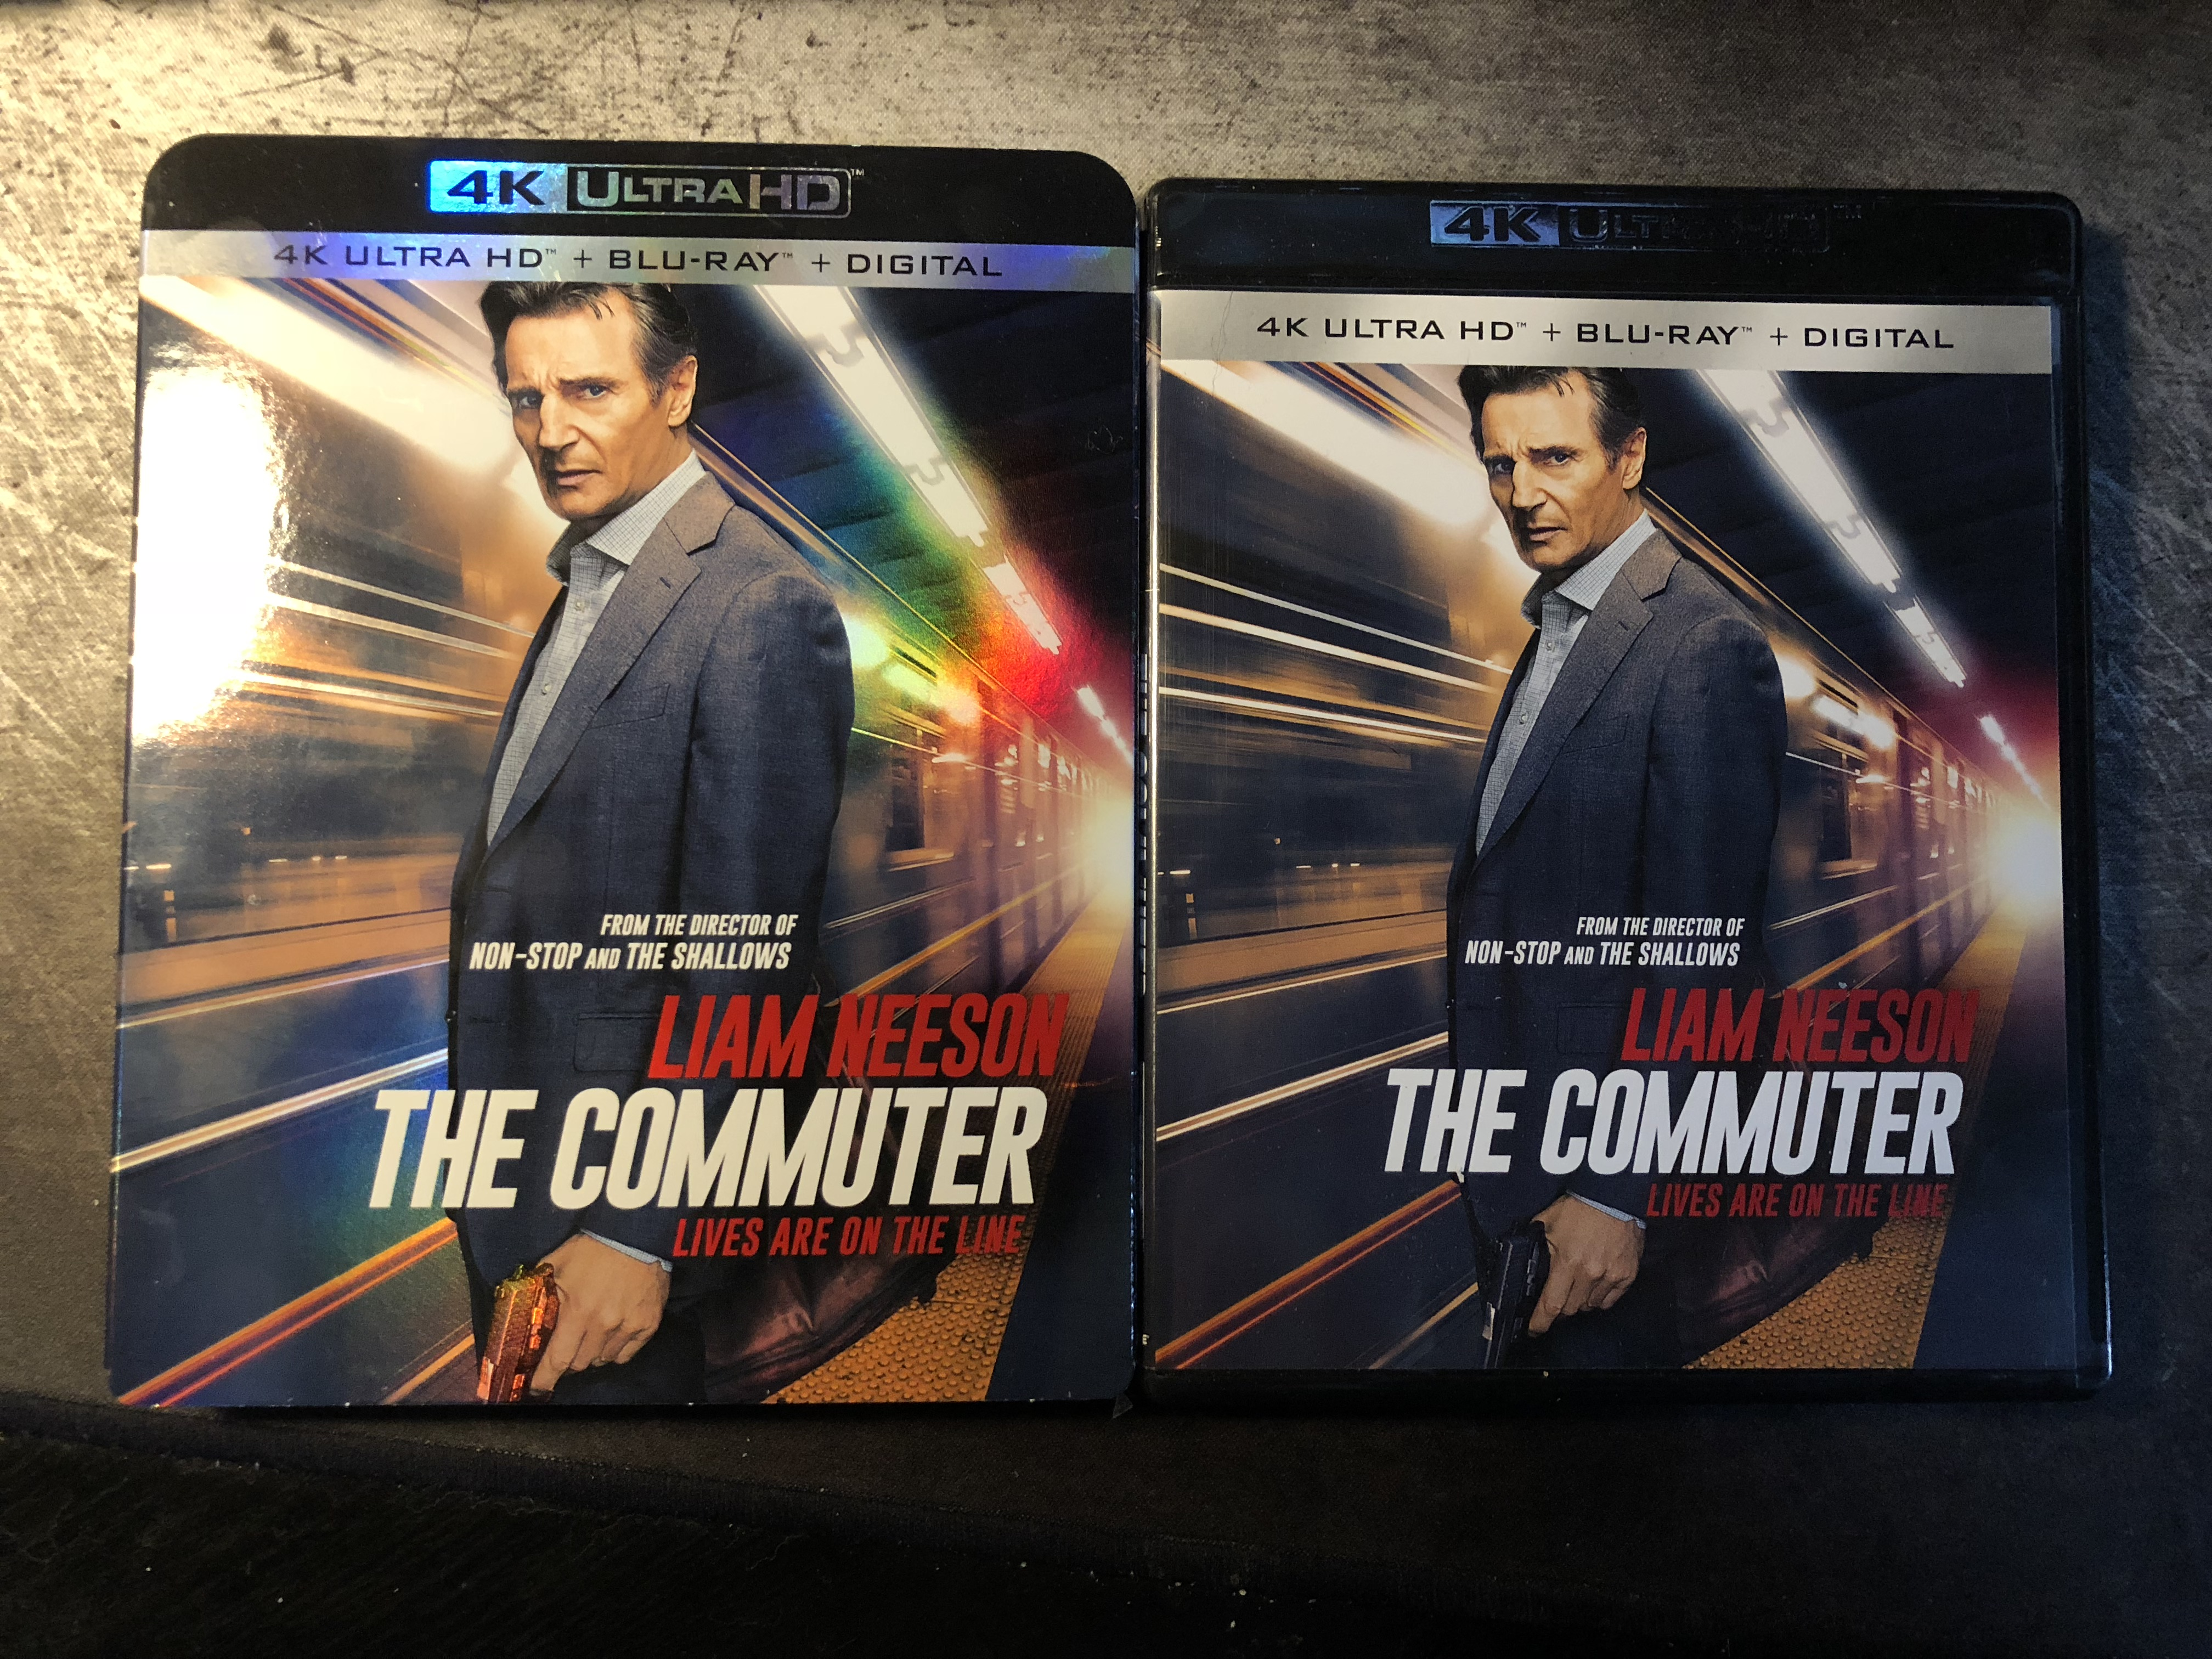 The Commuter 2018 4k Uhd Review The Nerd Mentality